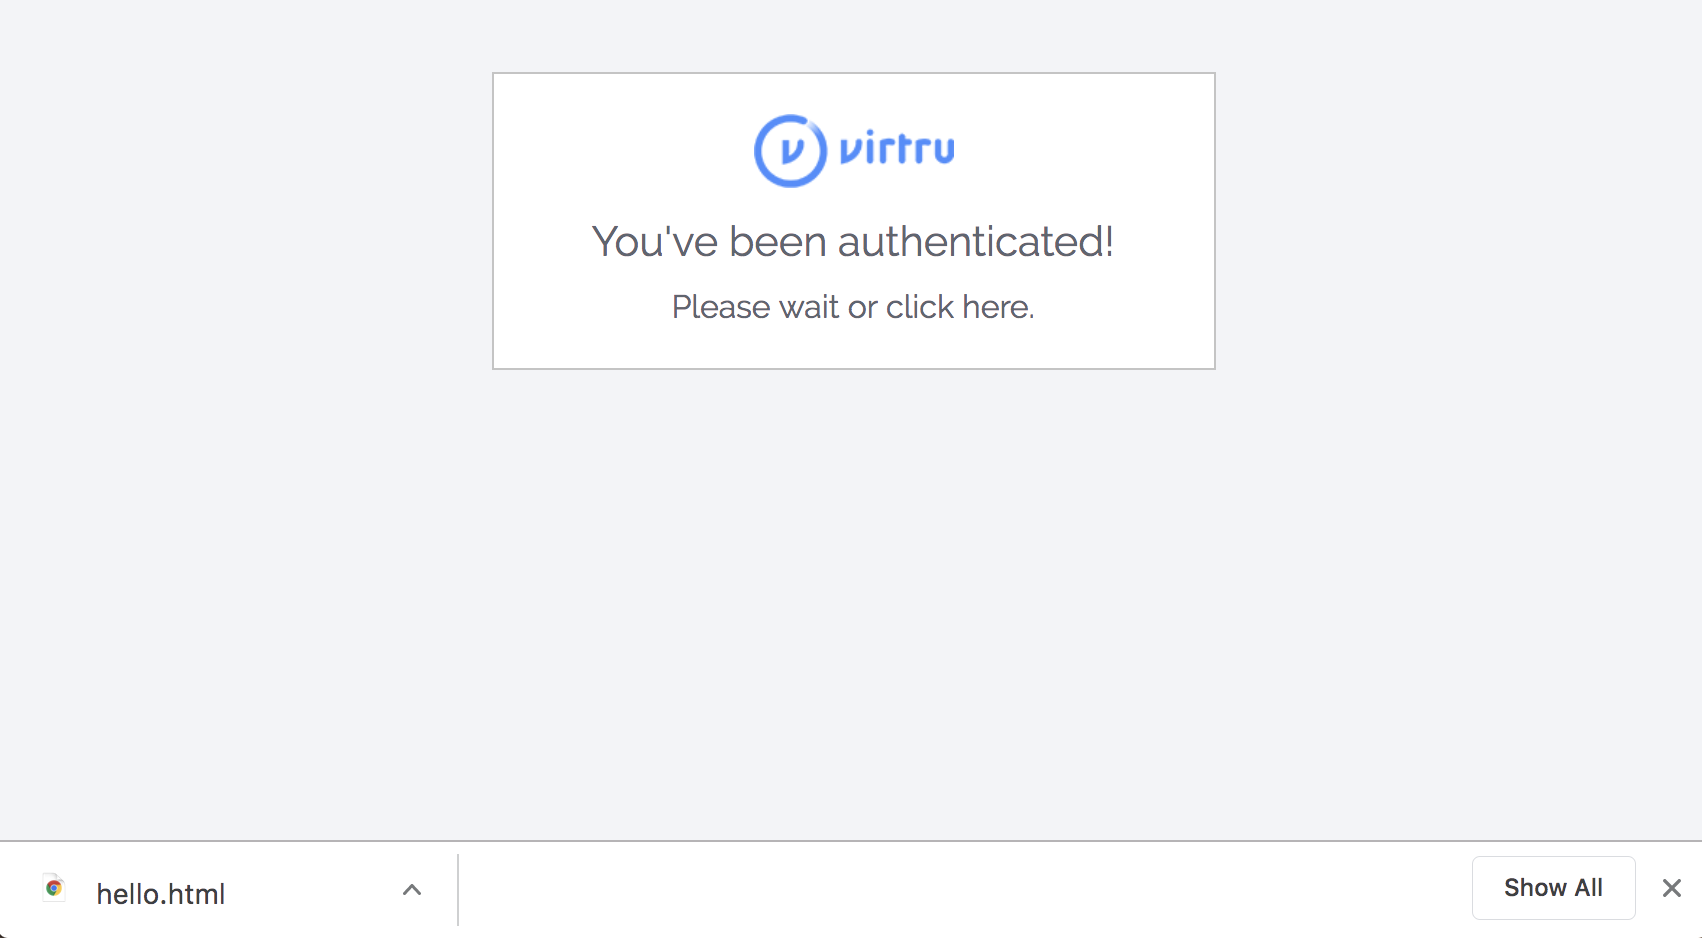 UI after successfully authenticating with the Auth Widget